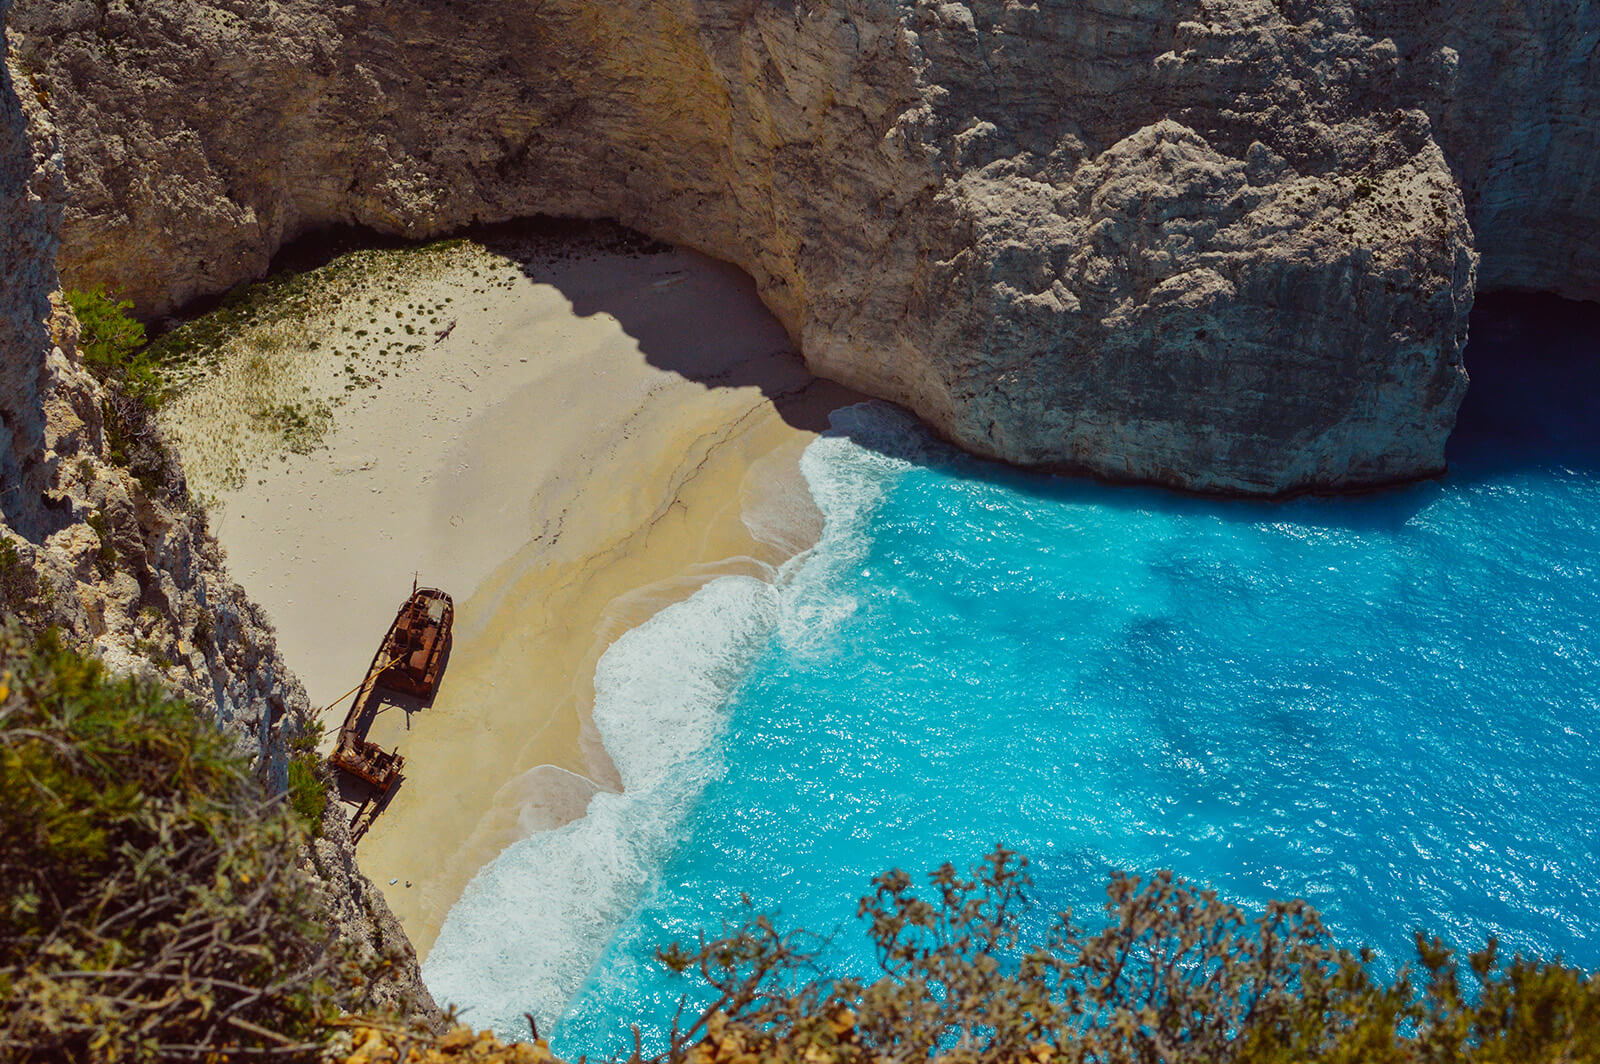 The iconic Shipwreck Cove in Zakynthos, Greece